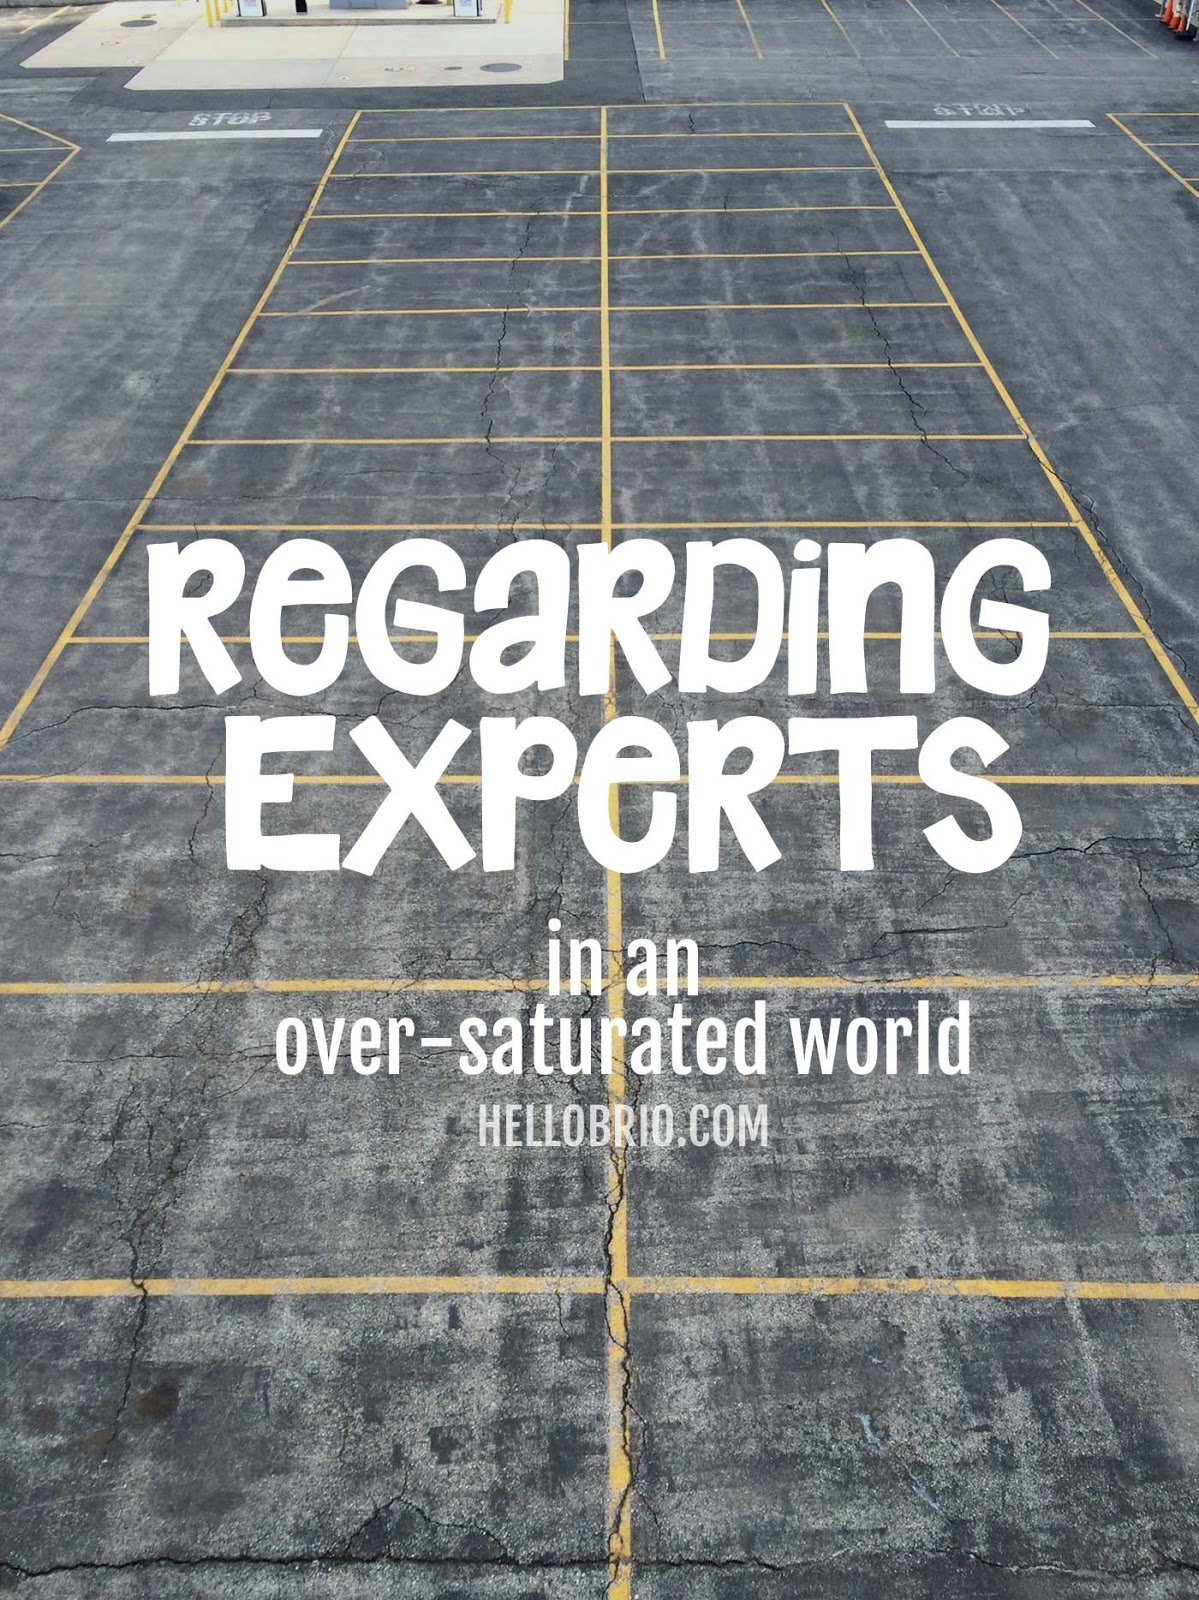 Regarding Experts in an over-saturated world